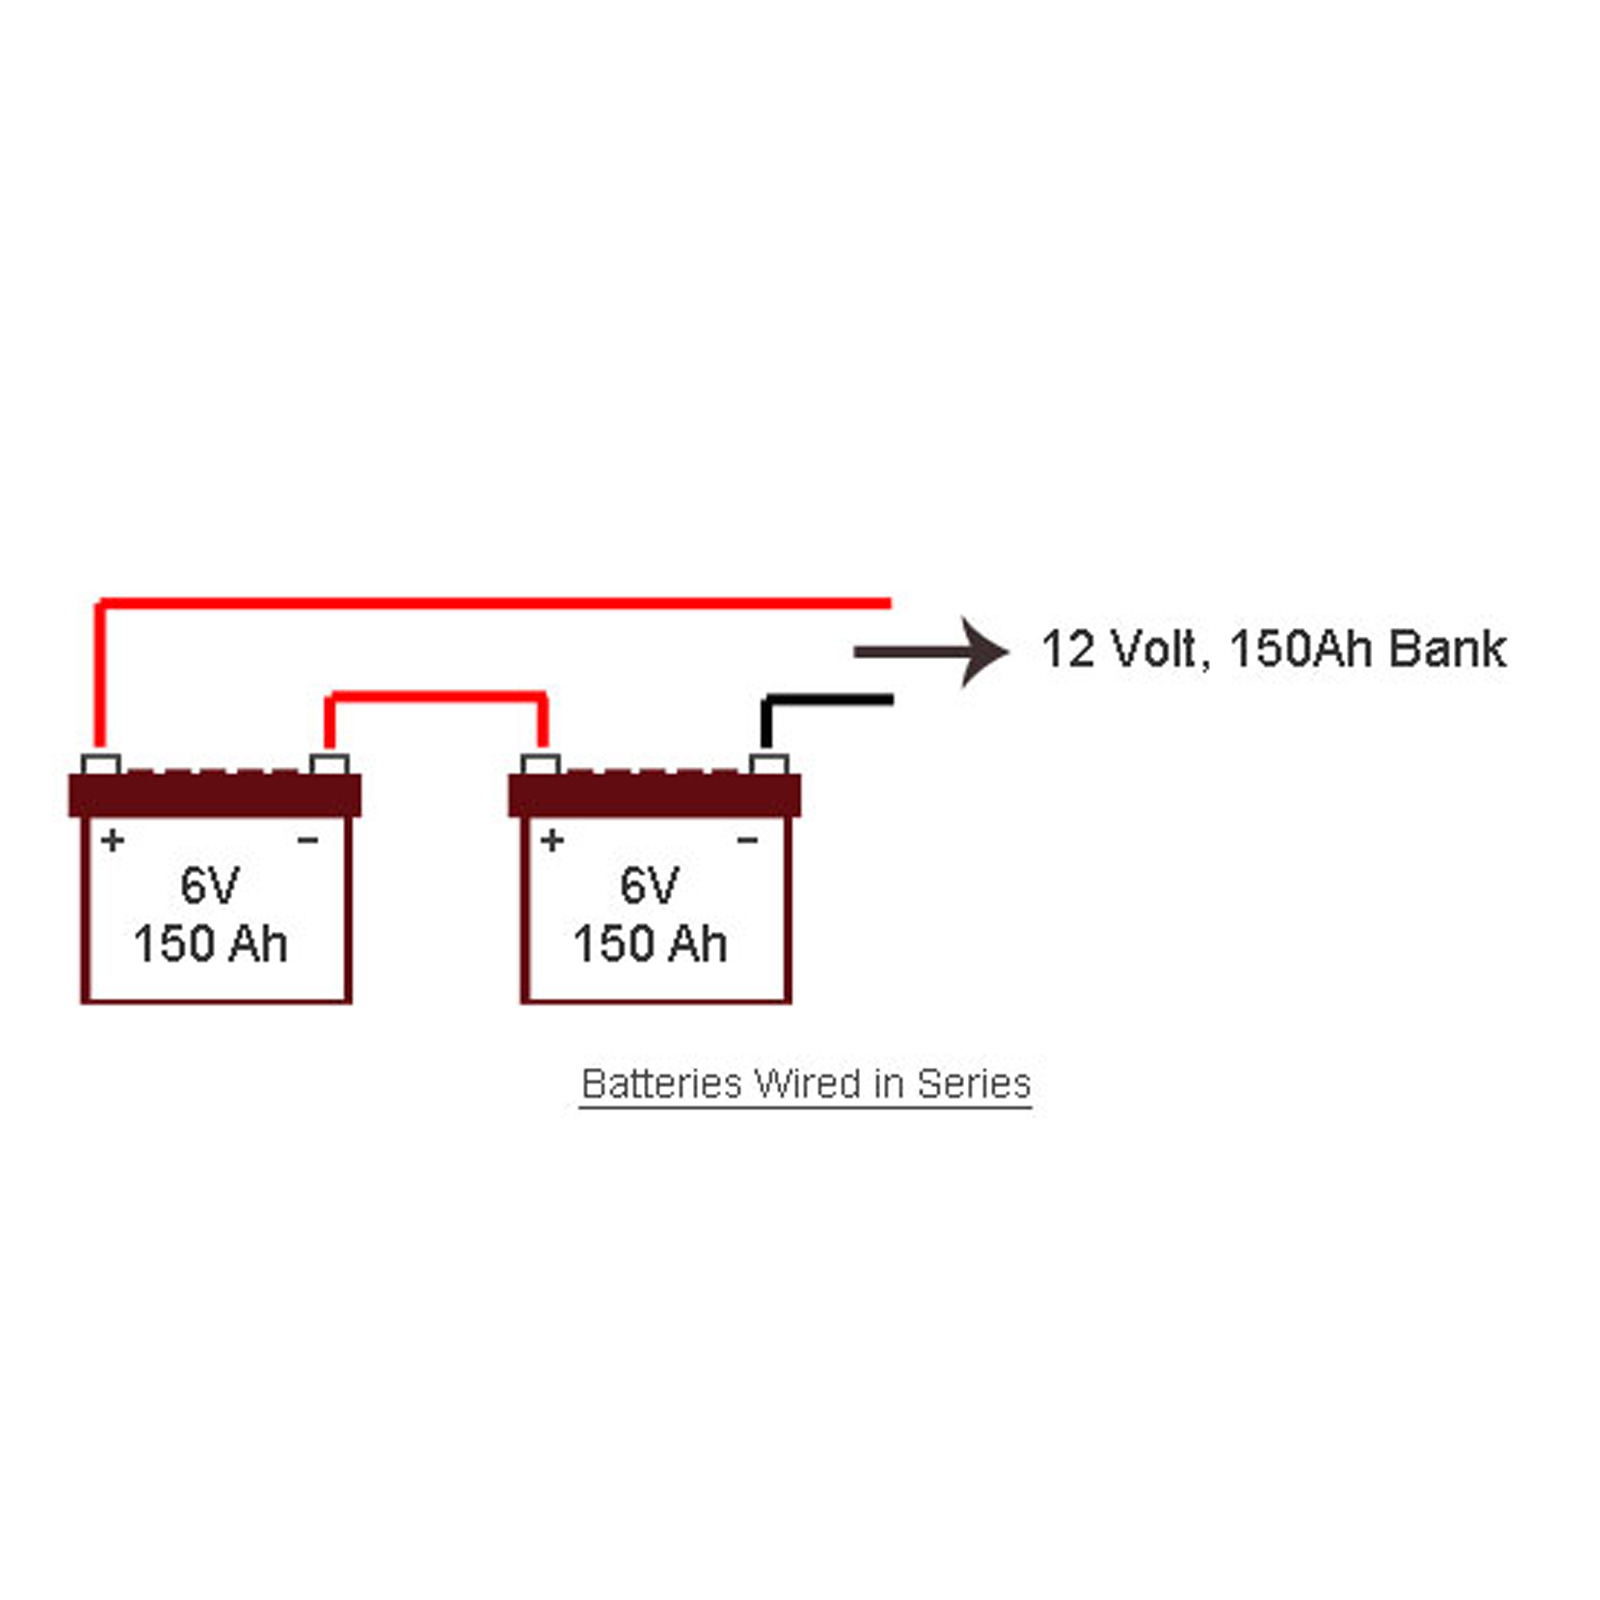 hight resolution of  voltmeter wiring diagram soldering iron wiring let it build plan how to build a solar powered battery charger voltage meter battery